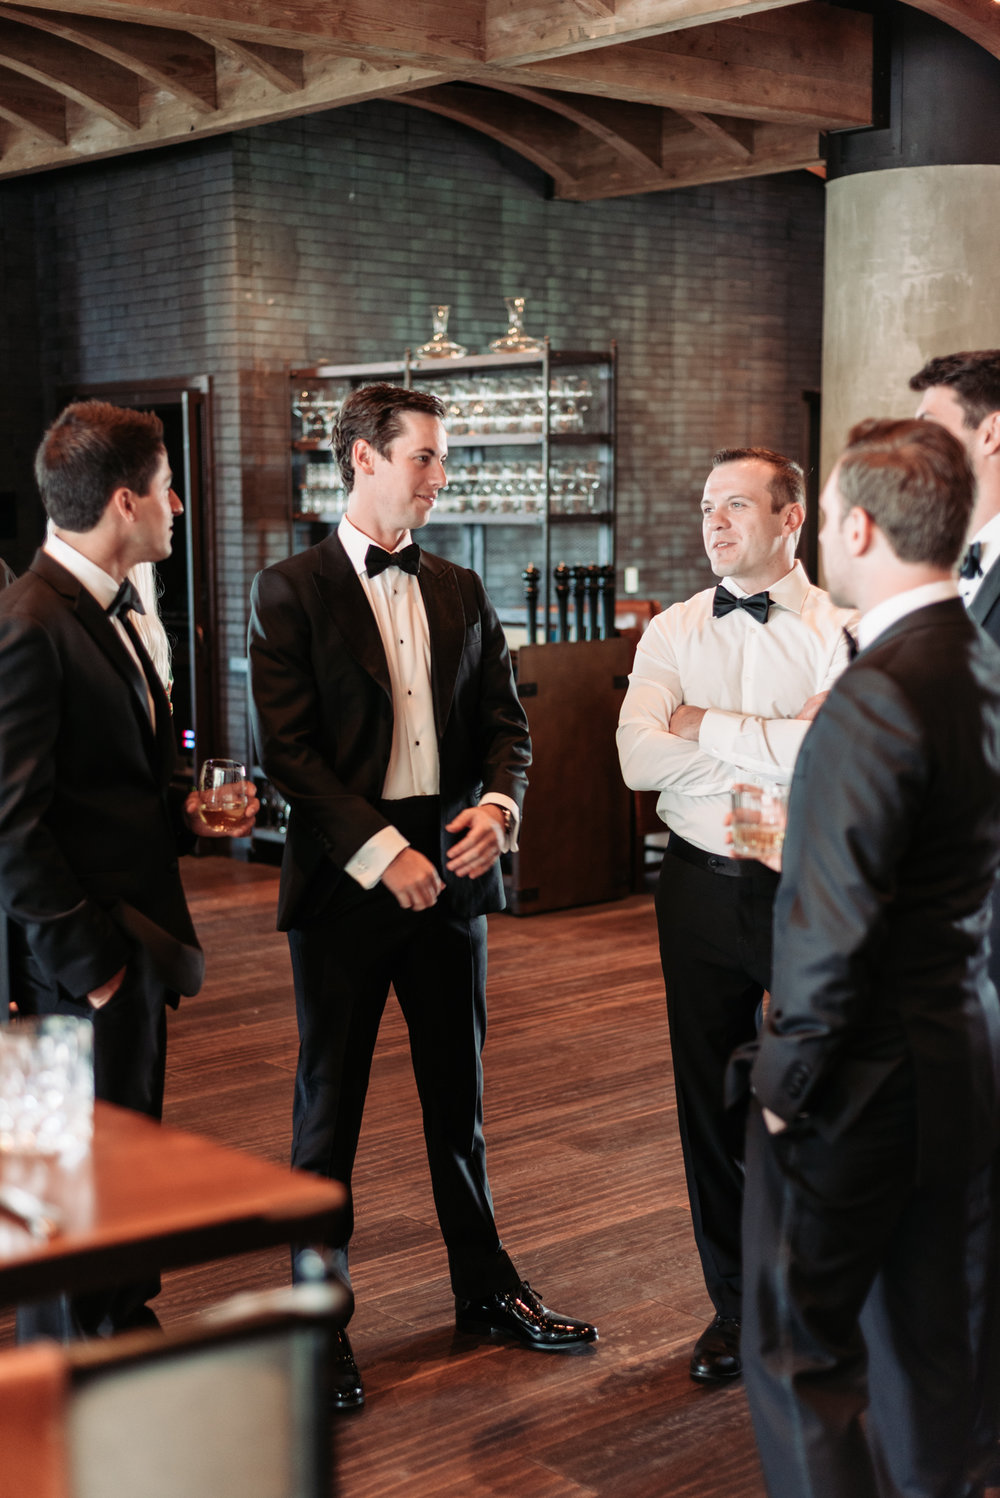 Wedding venue groomsmen Bennett Brown photography wedding groom suit bow tie